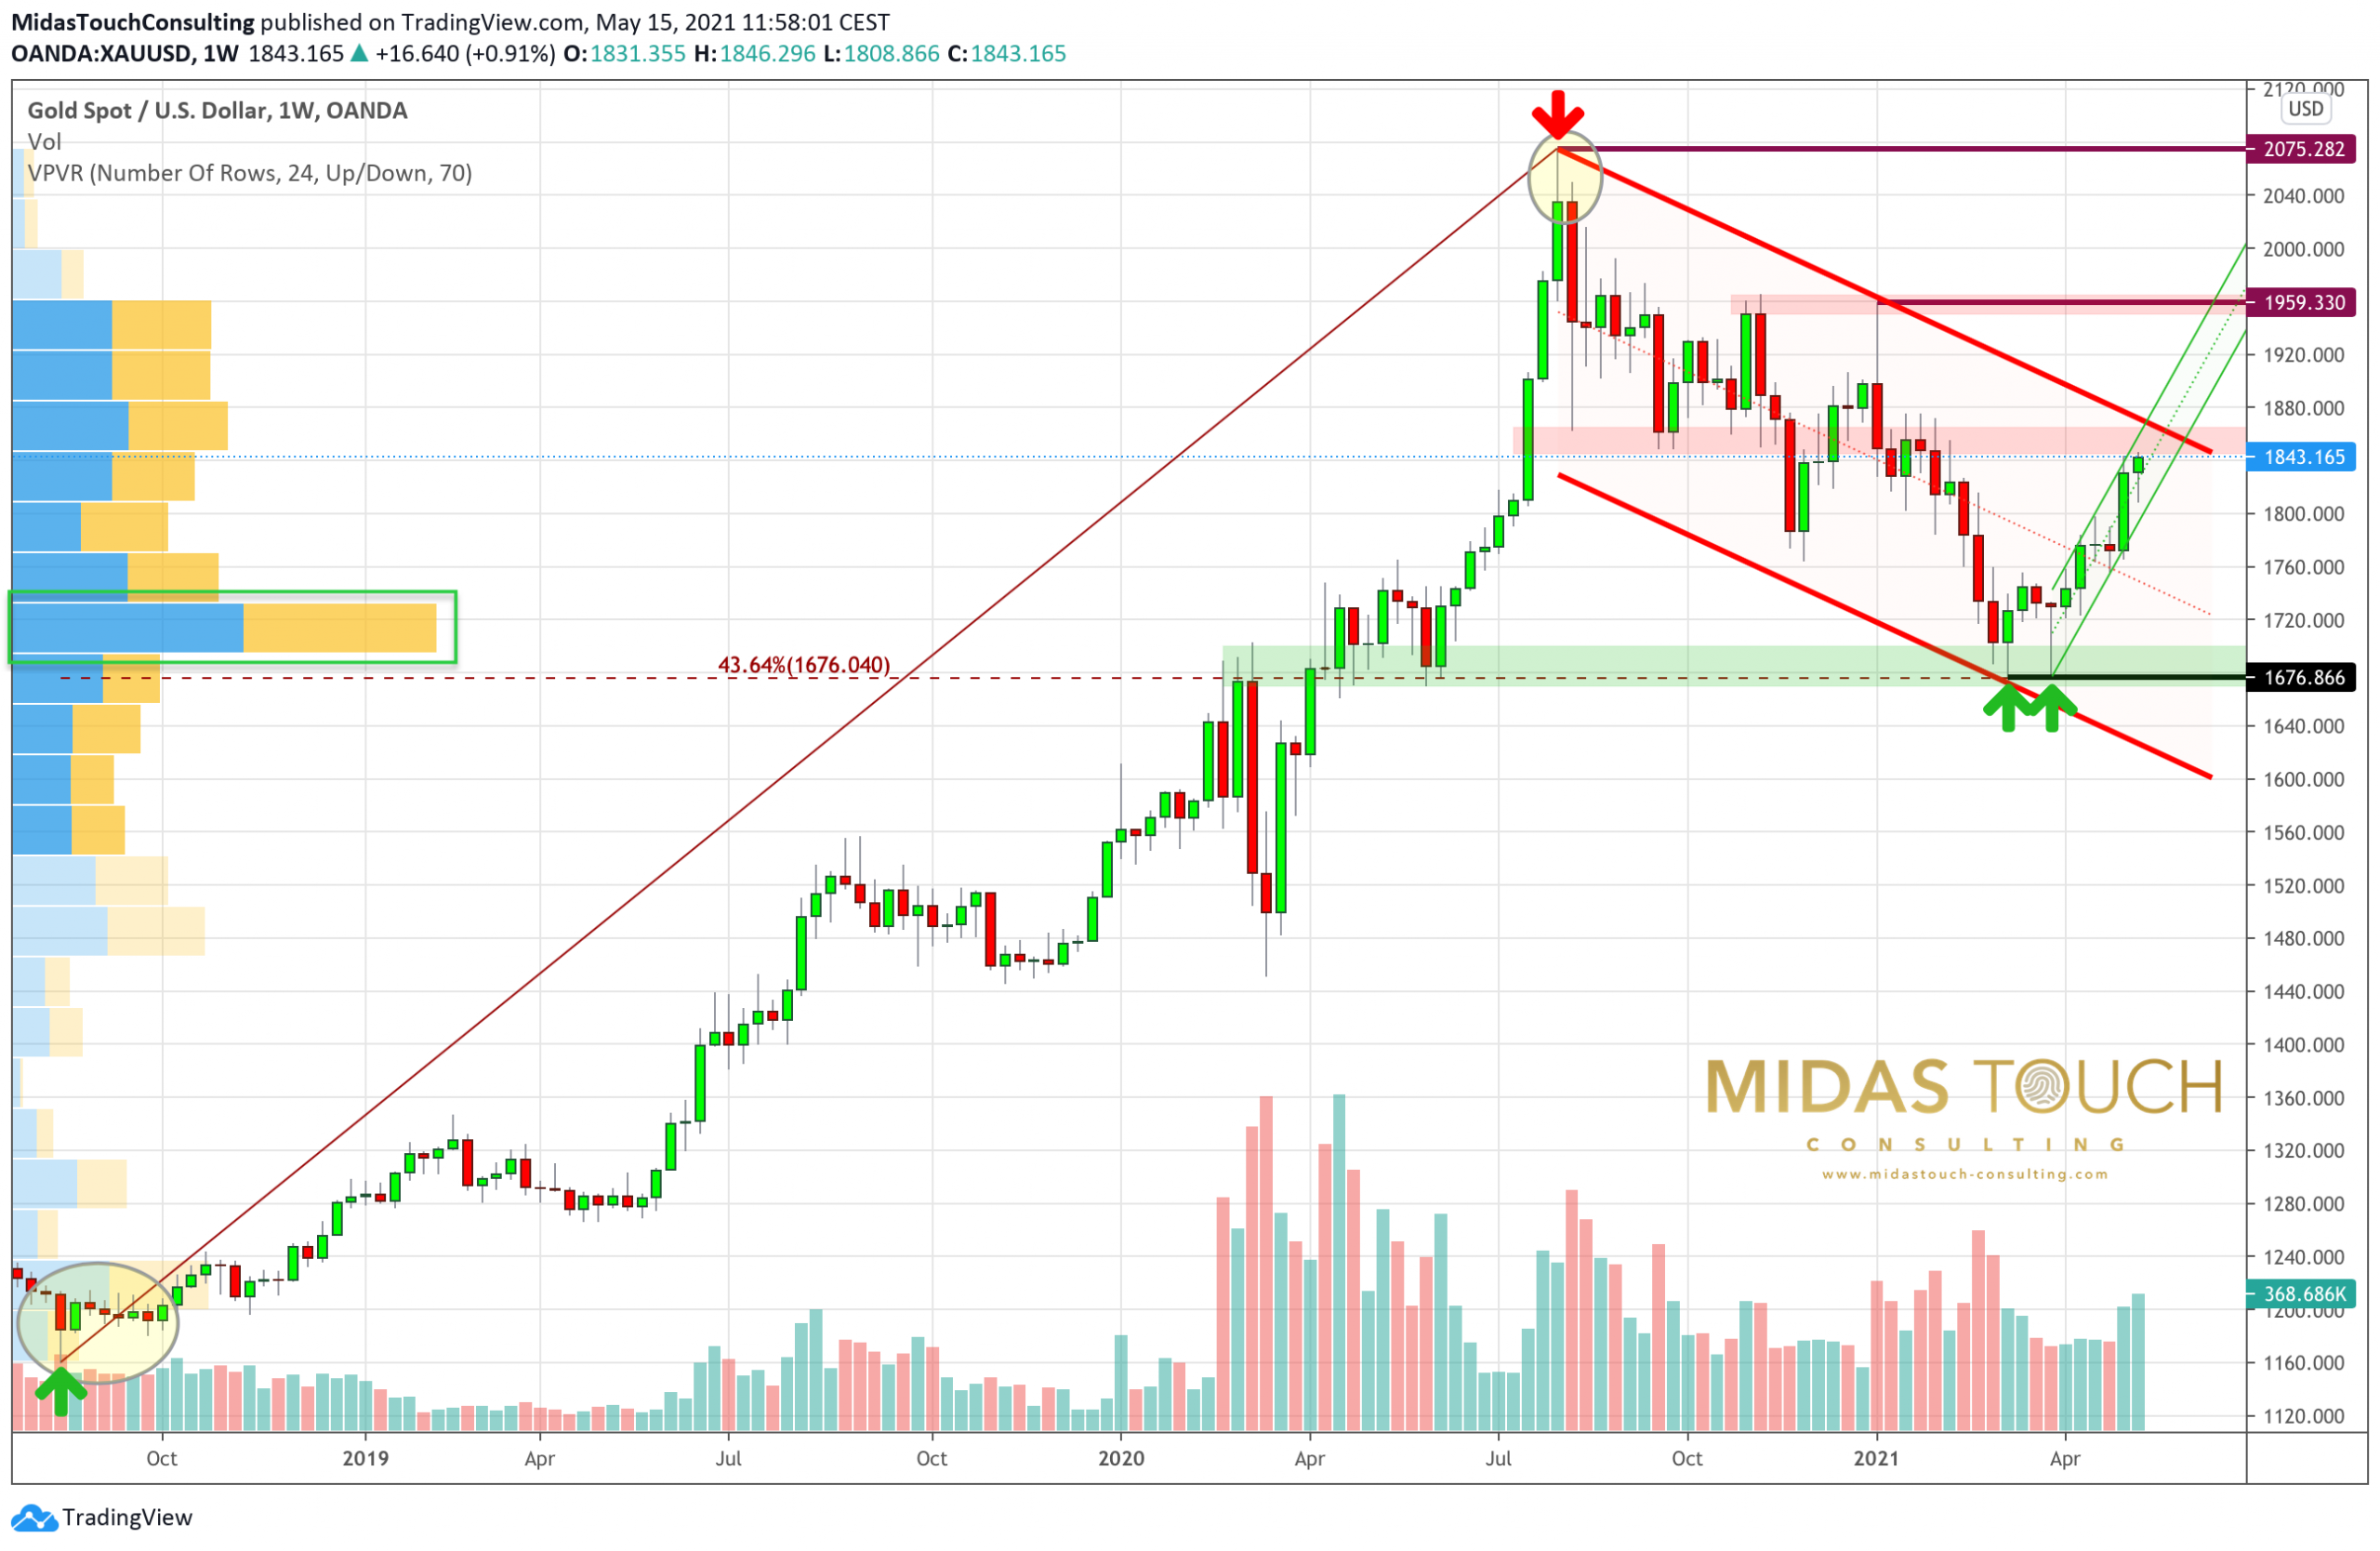 Gold in US-Dollars, weekly chart as ofMay15th, 2021. Source: Tradingview. The Midas Touch Gold Model™ Update.